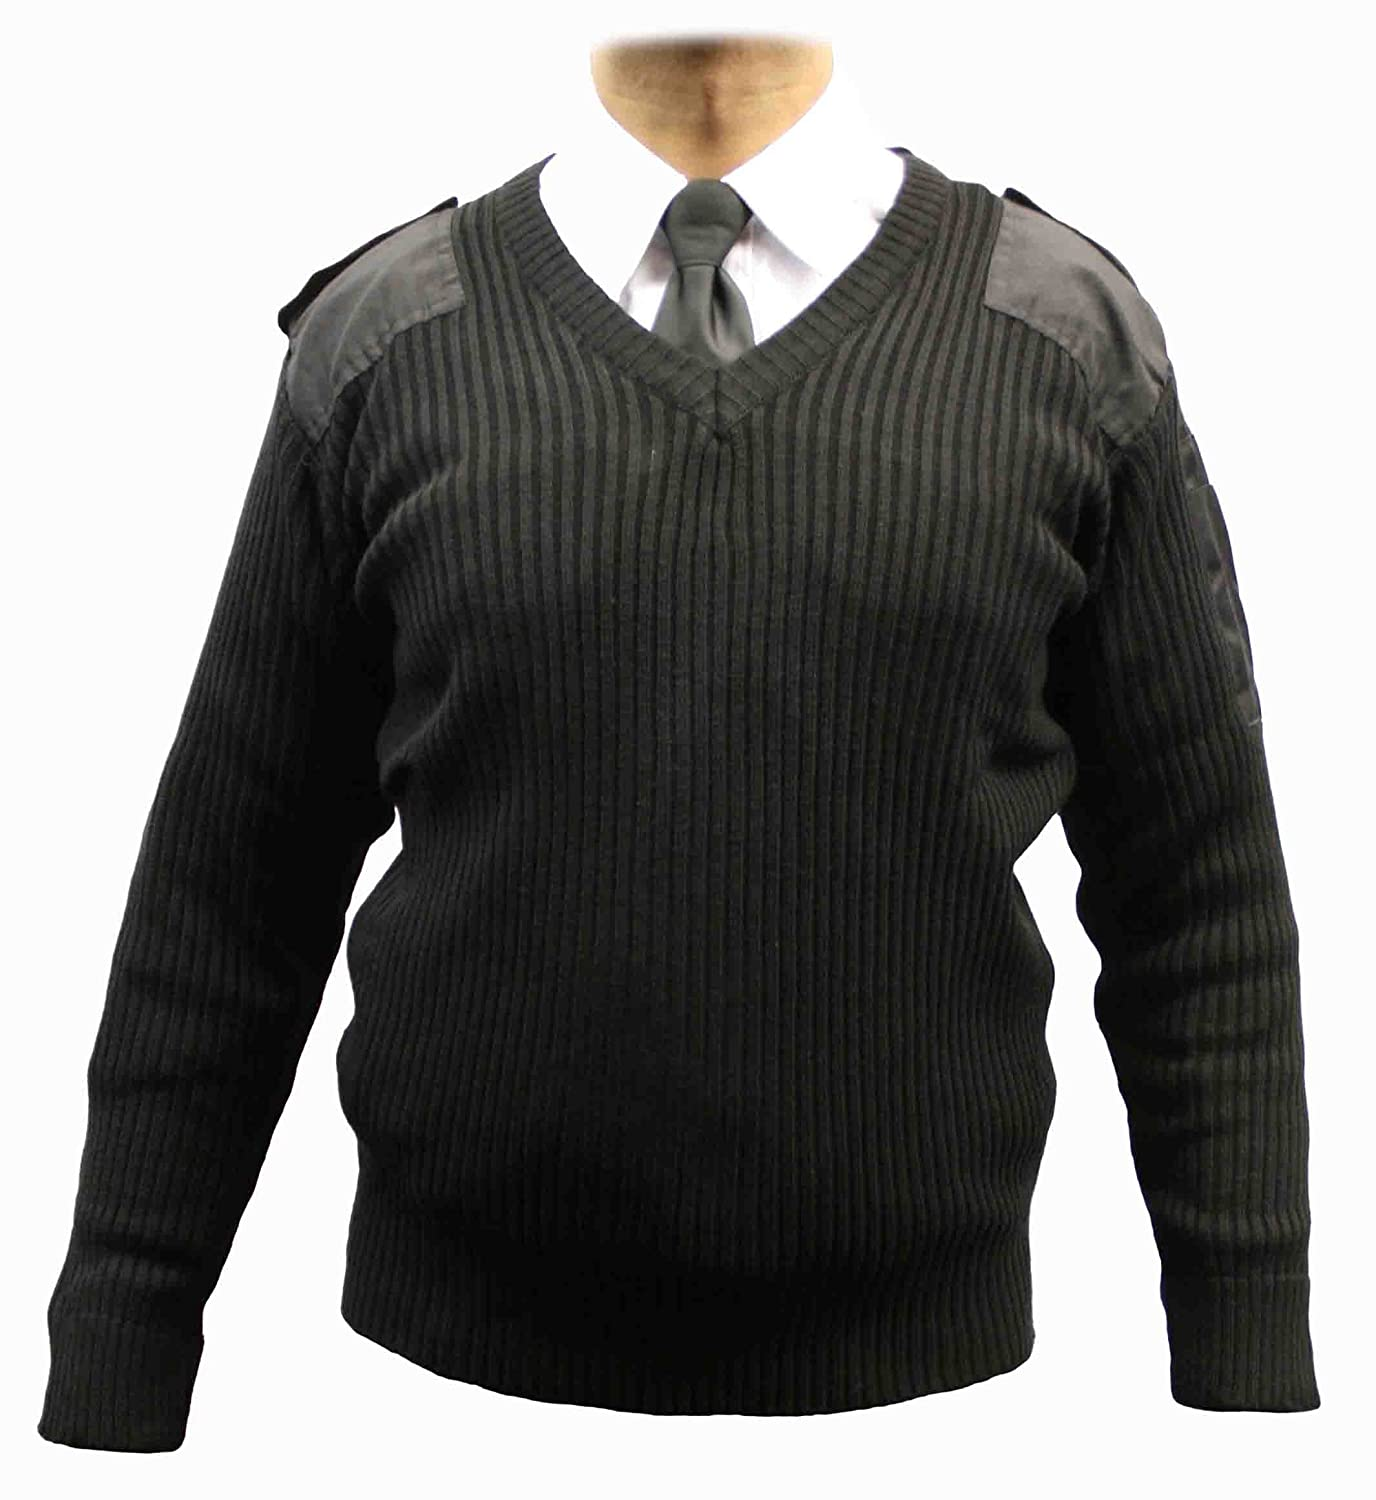 Adults Military Army Security Pullover Jumper Sweater V-Neck